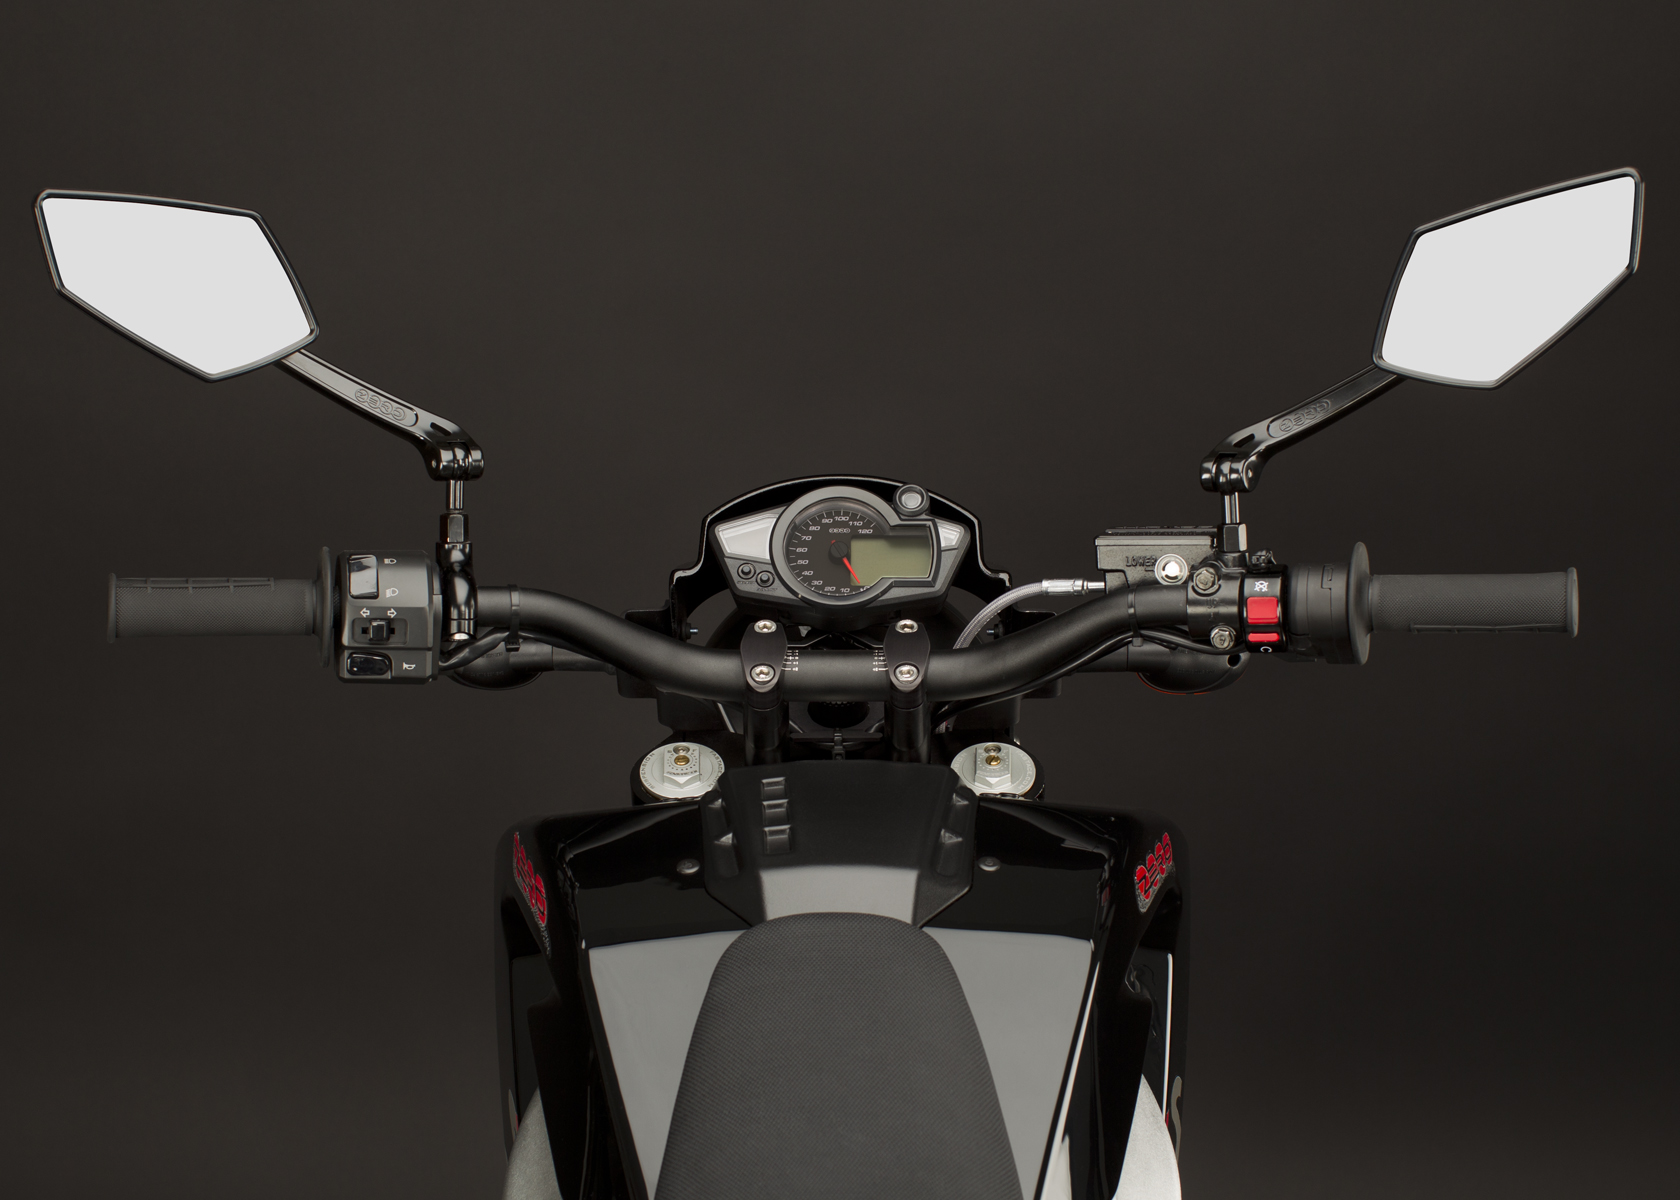 2011 Zero S Electric Motorcycle: Mirrors and Controls